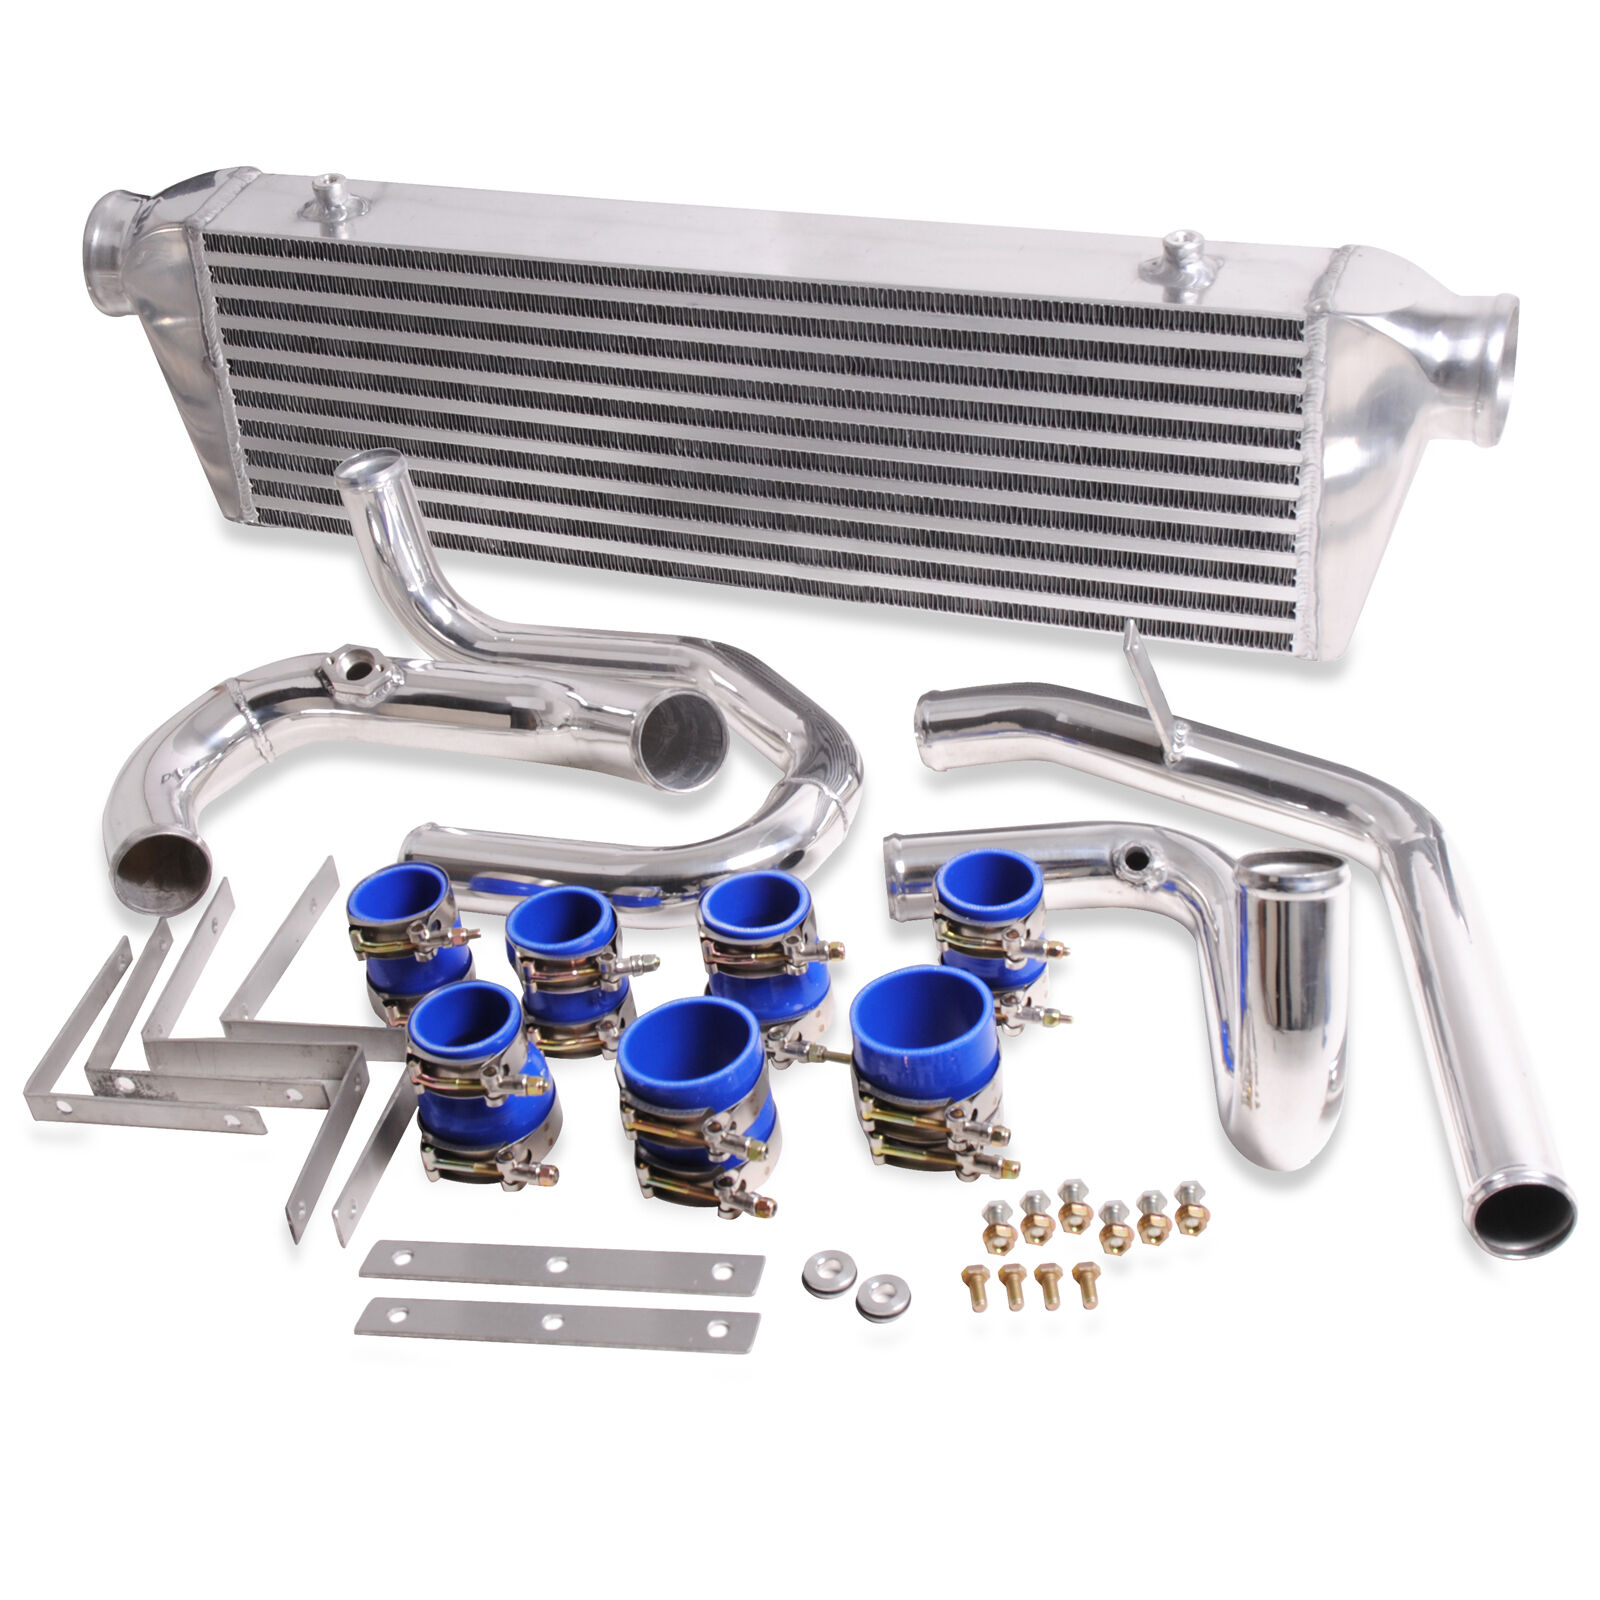 alloy turbo front mount intercooler kit fmic for vw golf mk4 bora jetta 1 8t gti. Black Bedroom Furniture Sets. Home Design Ideas